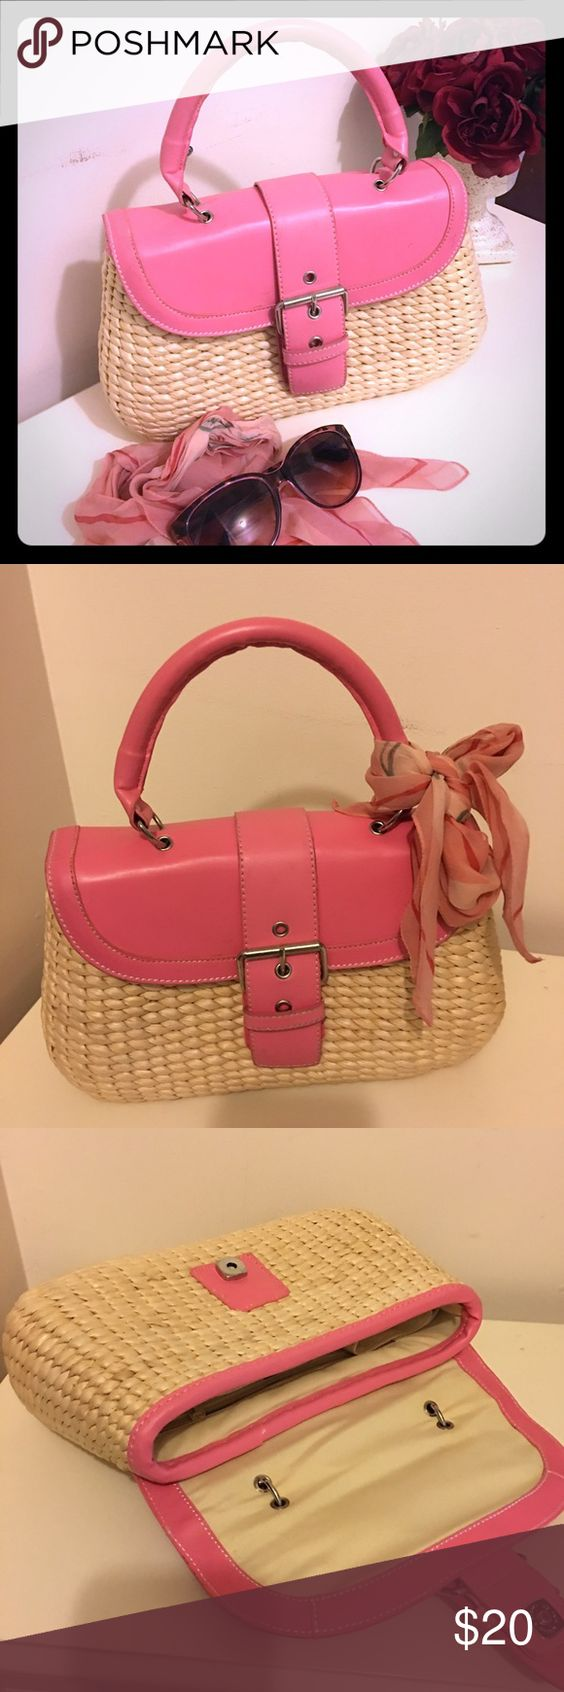 Cute straw handbag Super cute straw handbag. Used once, very clean interior. In perfect condition. Color: baby pink and cream. Liz Claiborne Bags Totes